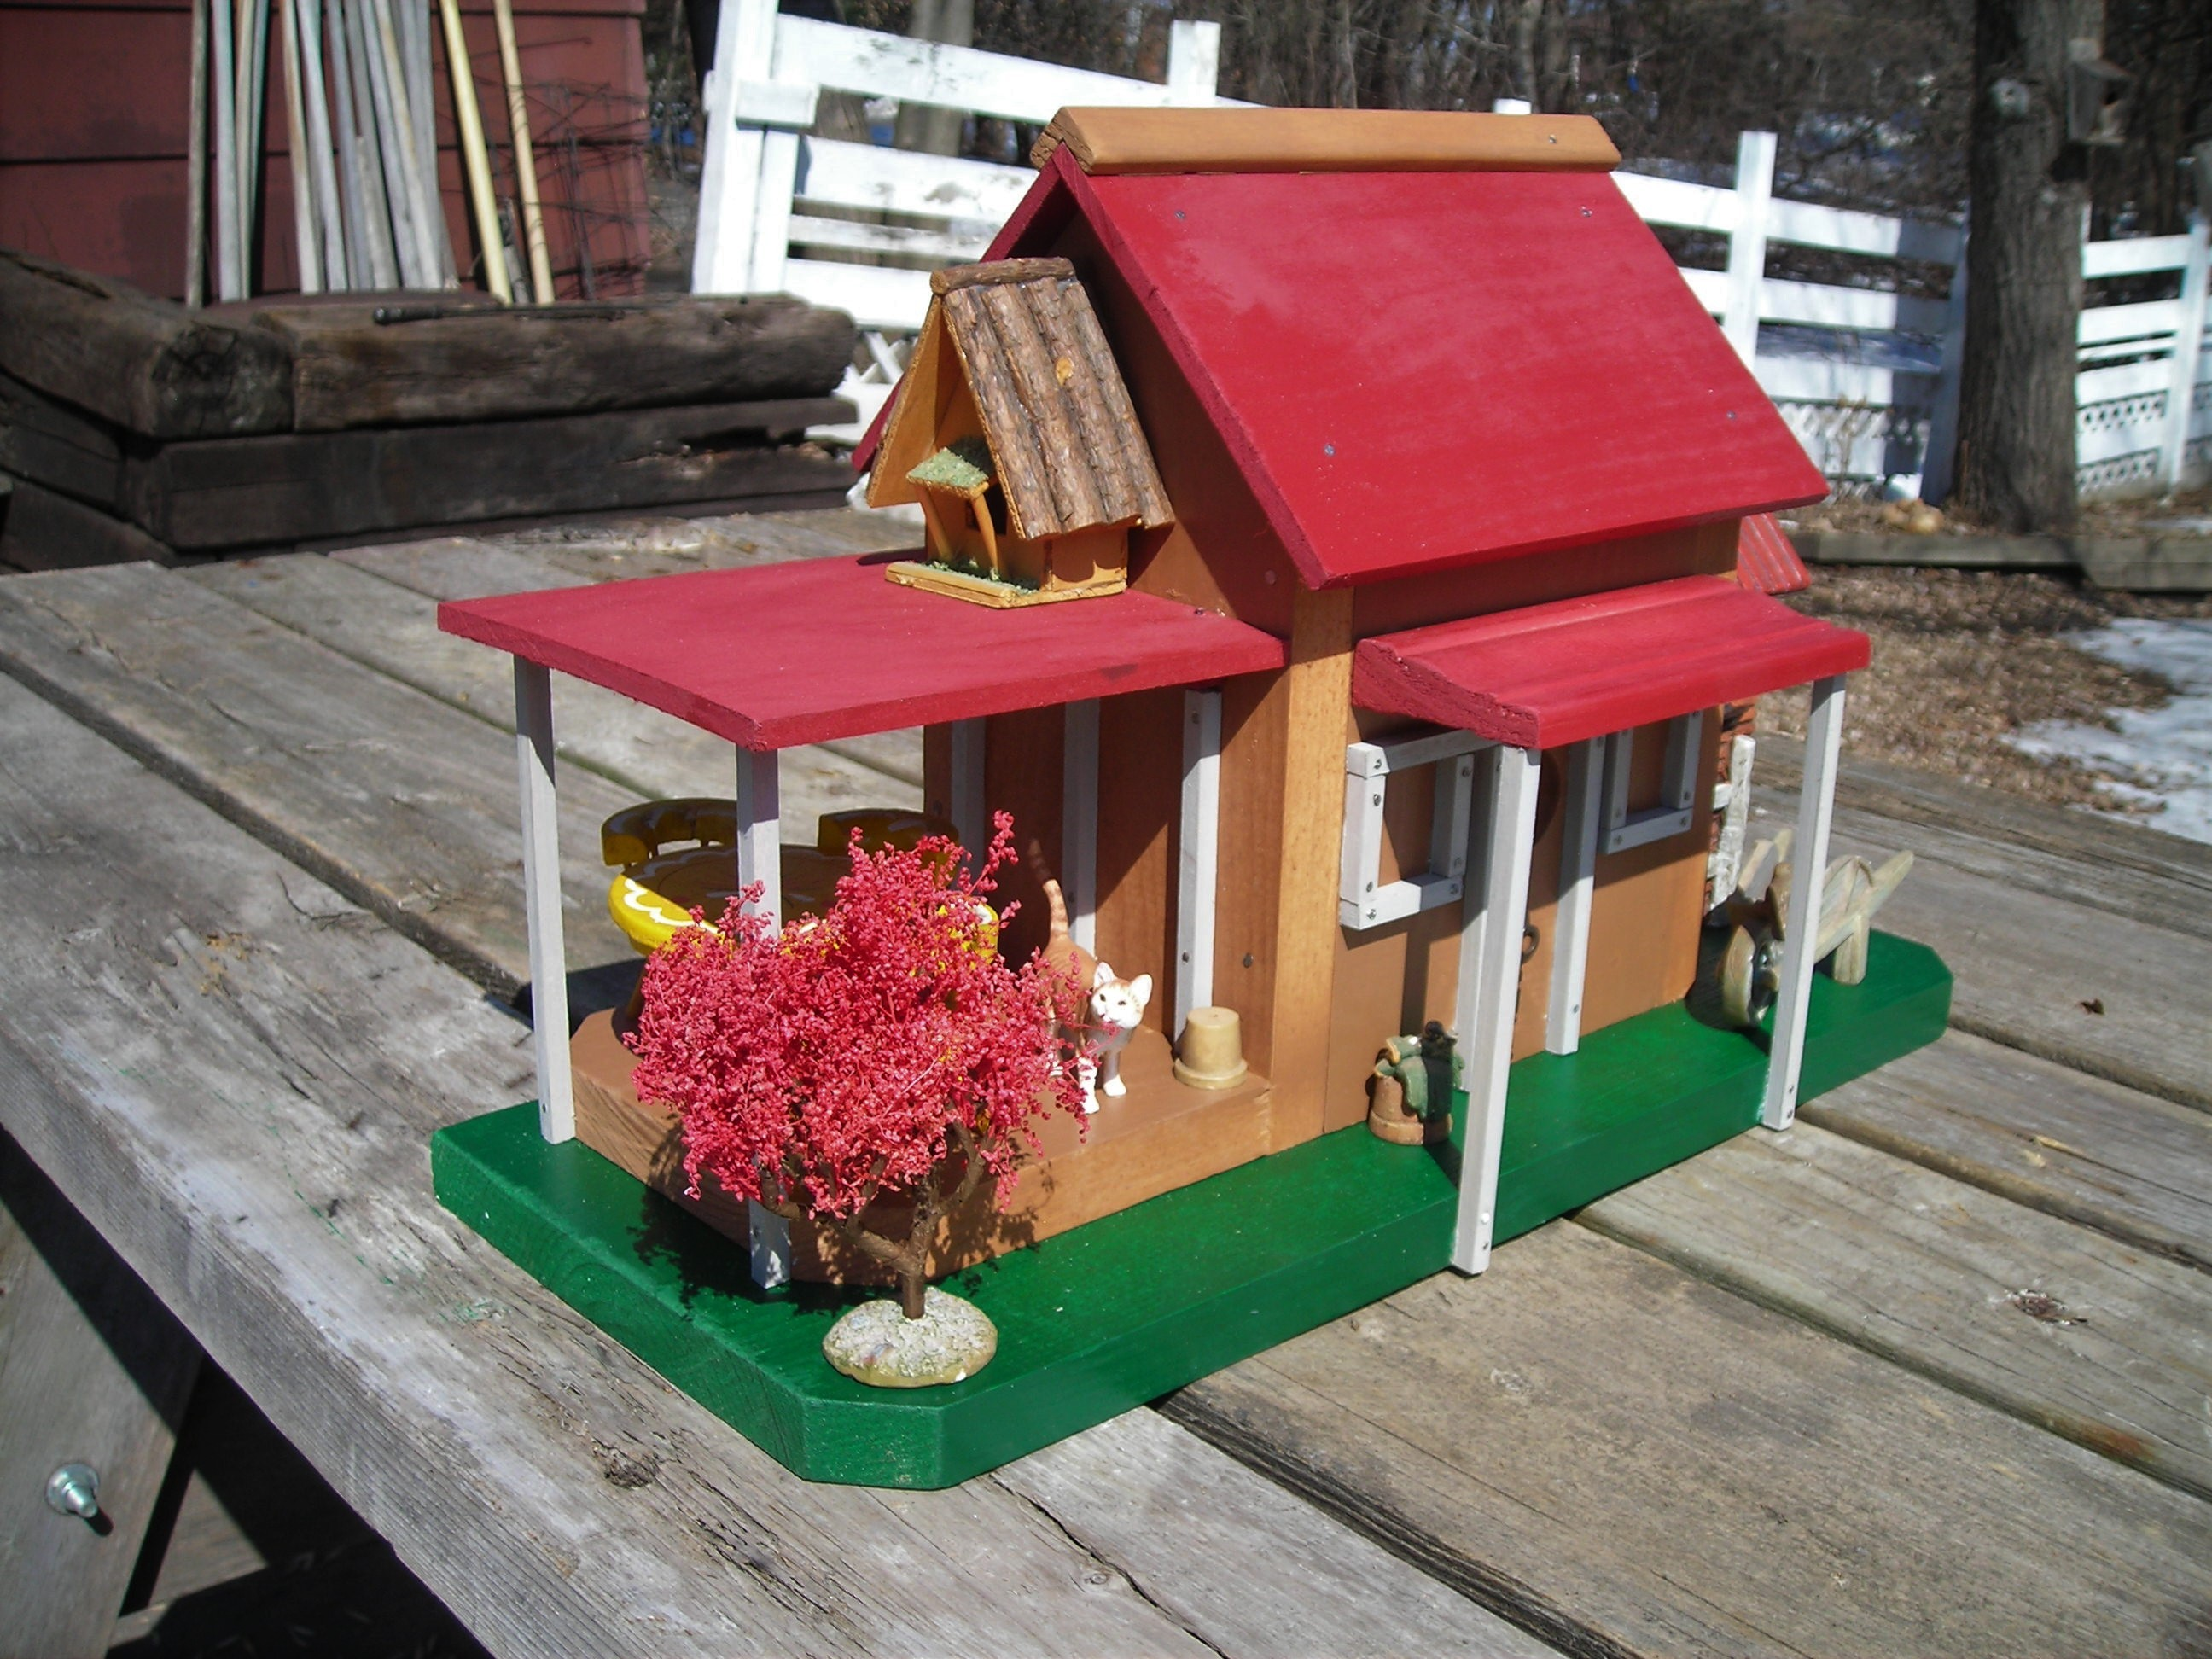 Rons Rustic Birdhouses Red Roof Cottage left